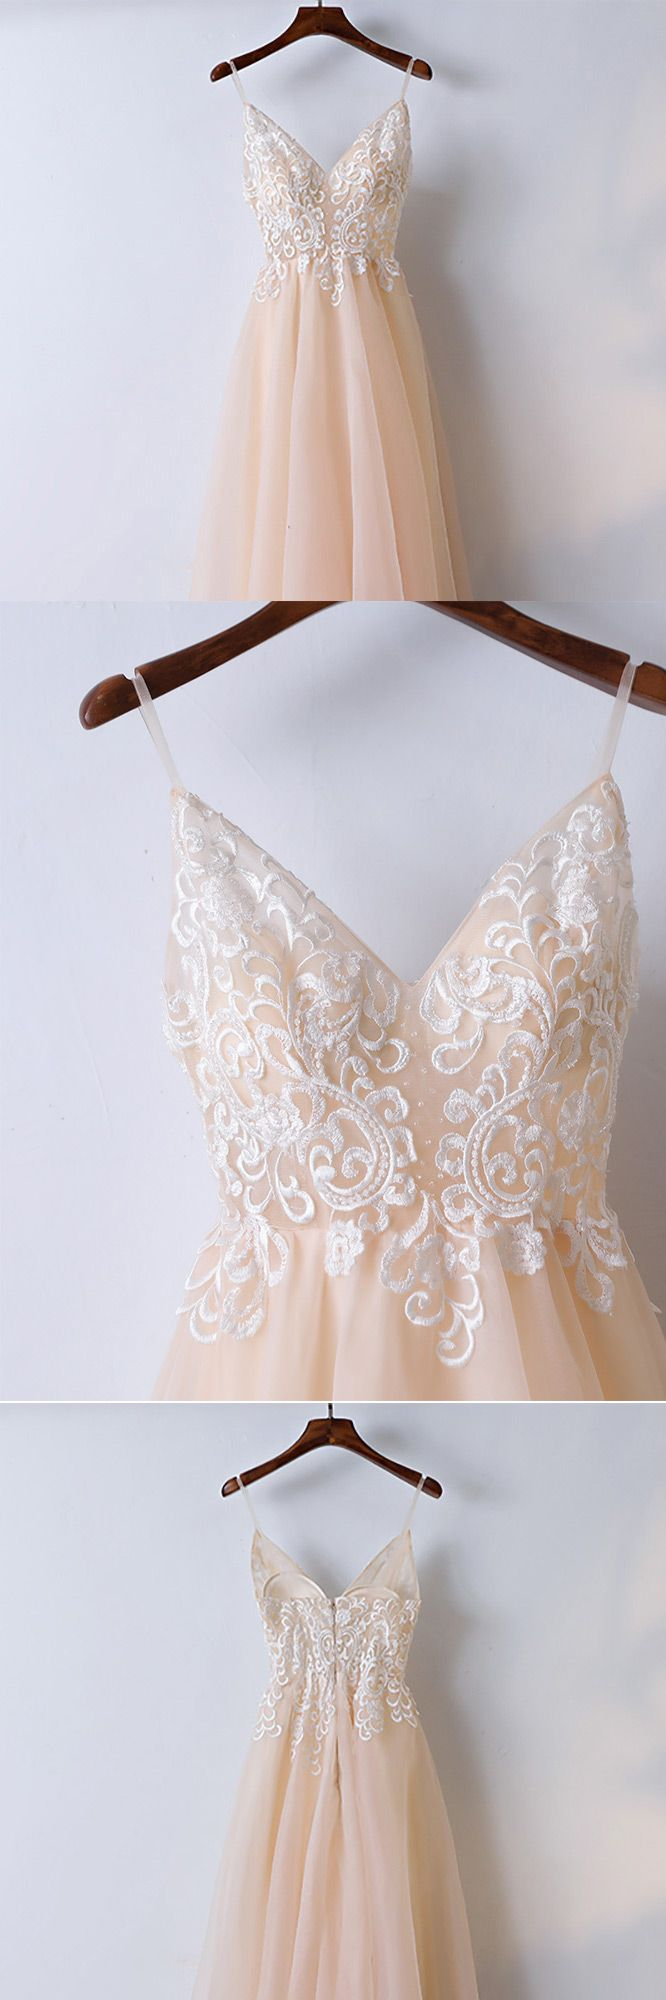 Only $118, Prom Dresses Boho Champagne Lace Long Prom Dress With Spaghetti Straps #MYX18059 at #GemGrace. View more special Bridal Party Dresses,Prom Dresses,Homecoming Dresses now? GemGrace is a solution for those who want to buy delicate gowns with affordable prices, a solution for those who have unique ideas about their gowns. 2018 new arrived, shop now!